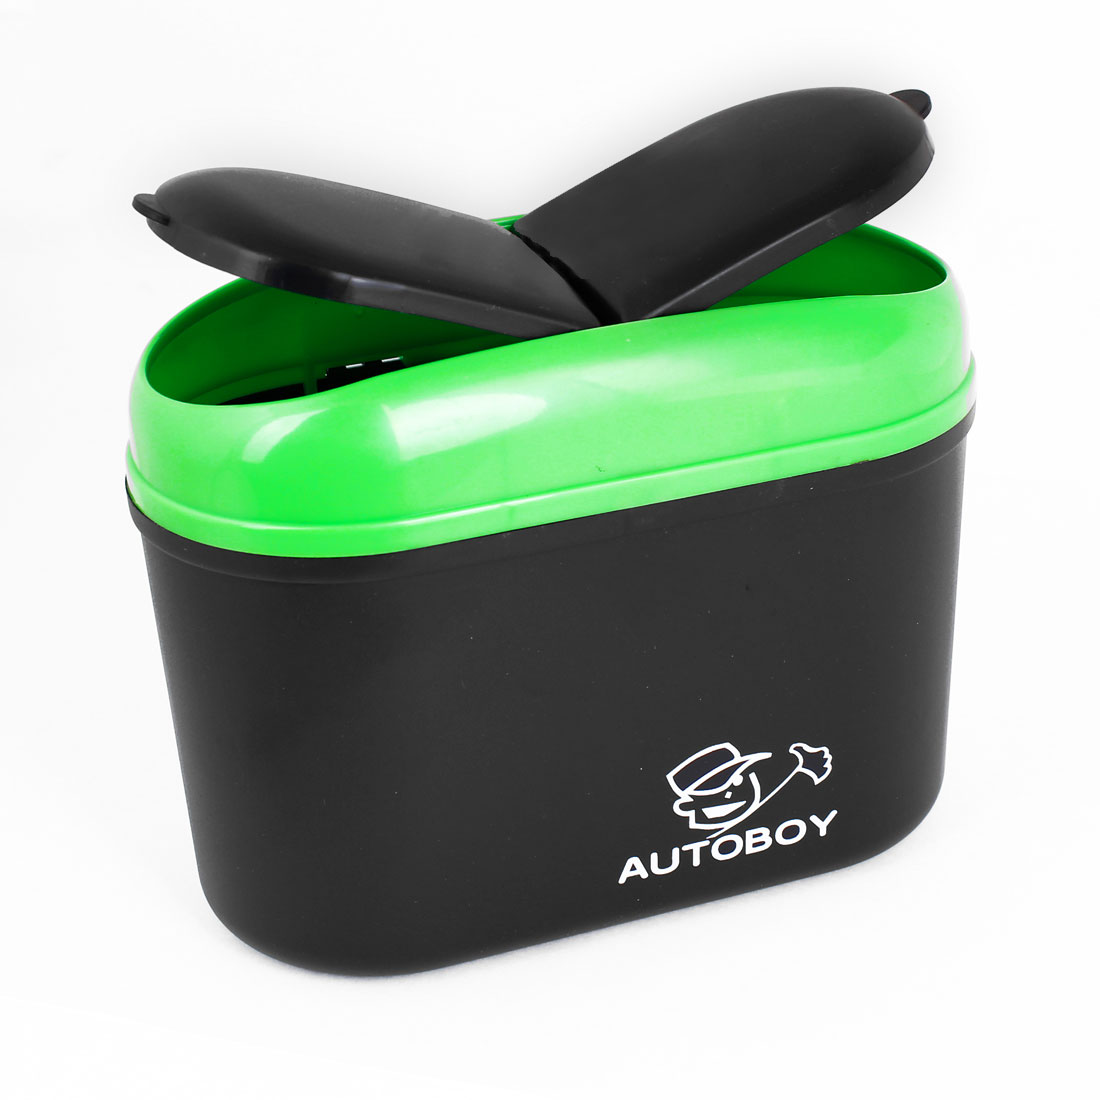 13cm Height Black Green Plastic Trash Rubbish Container for Car